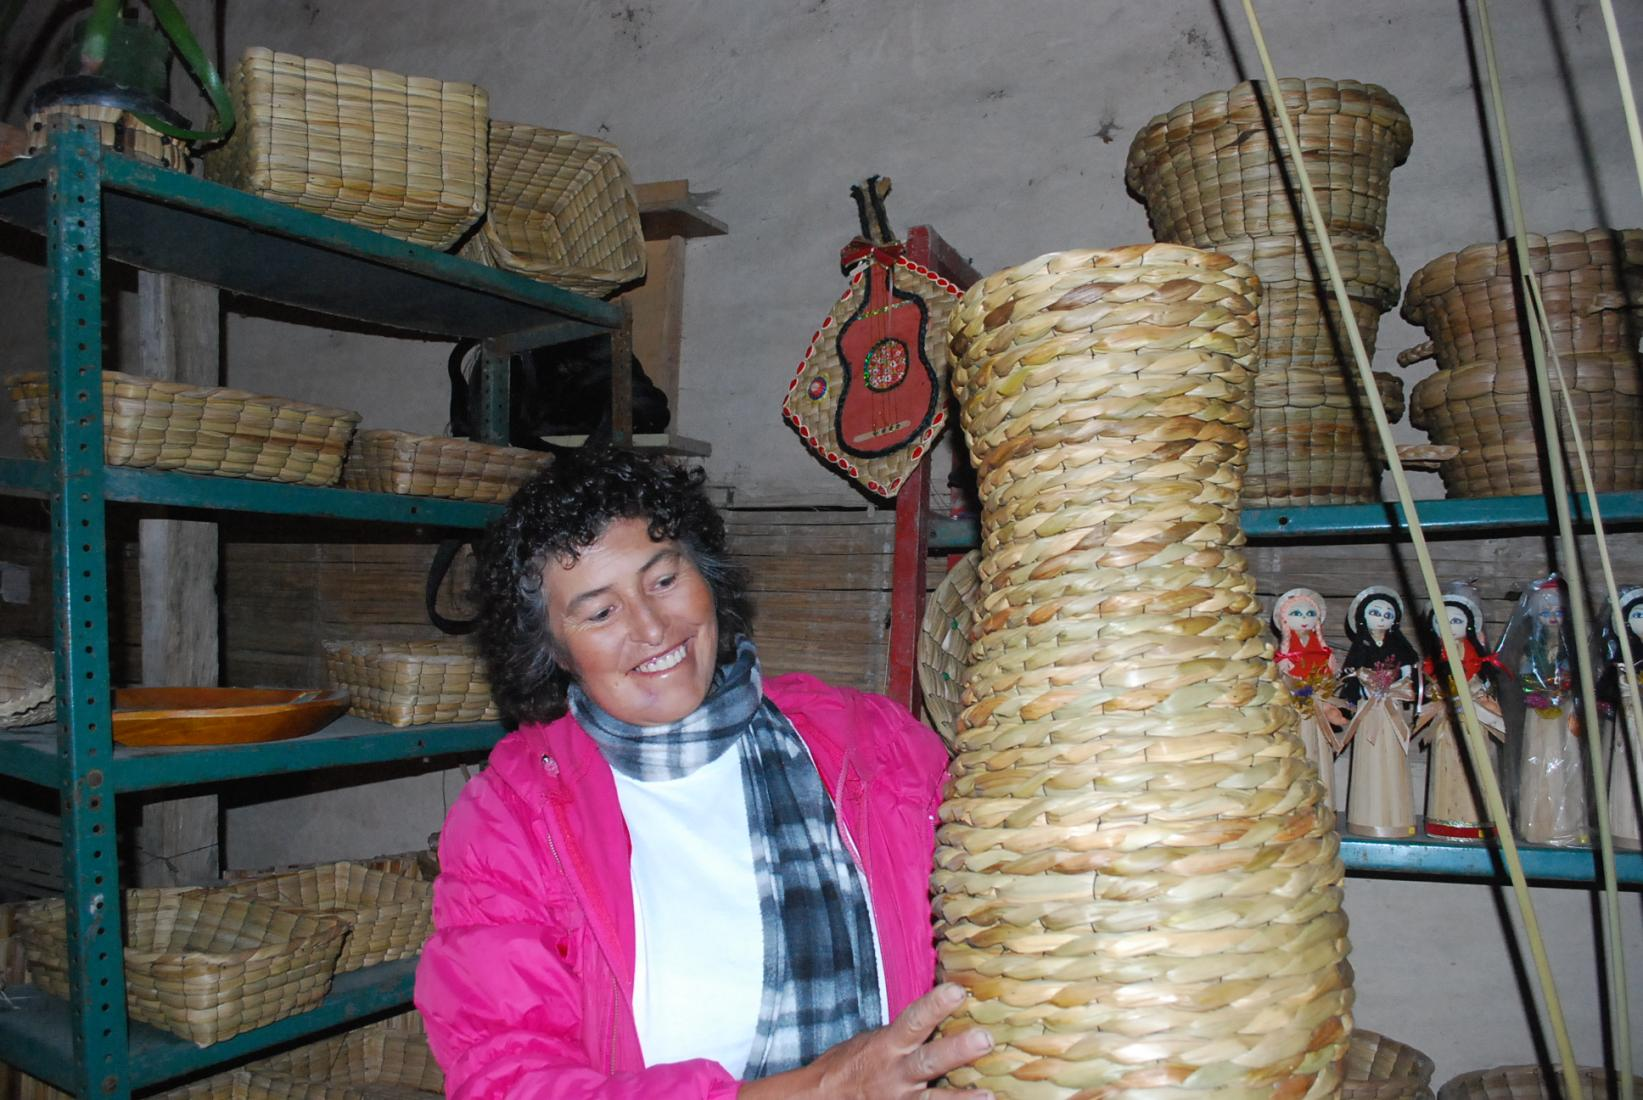 Basket weaver in a Colombian village.